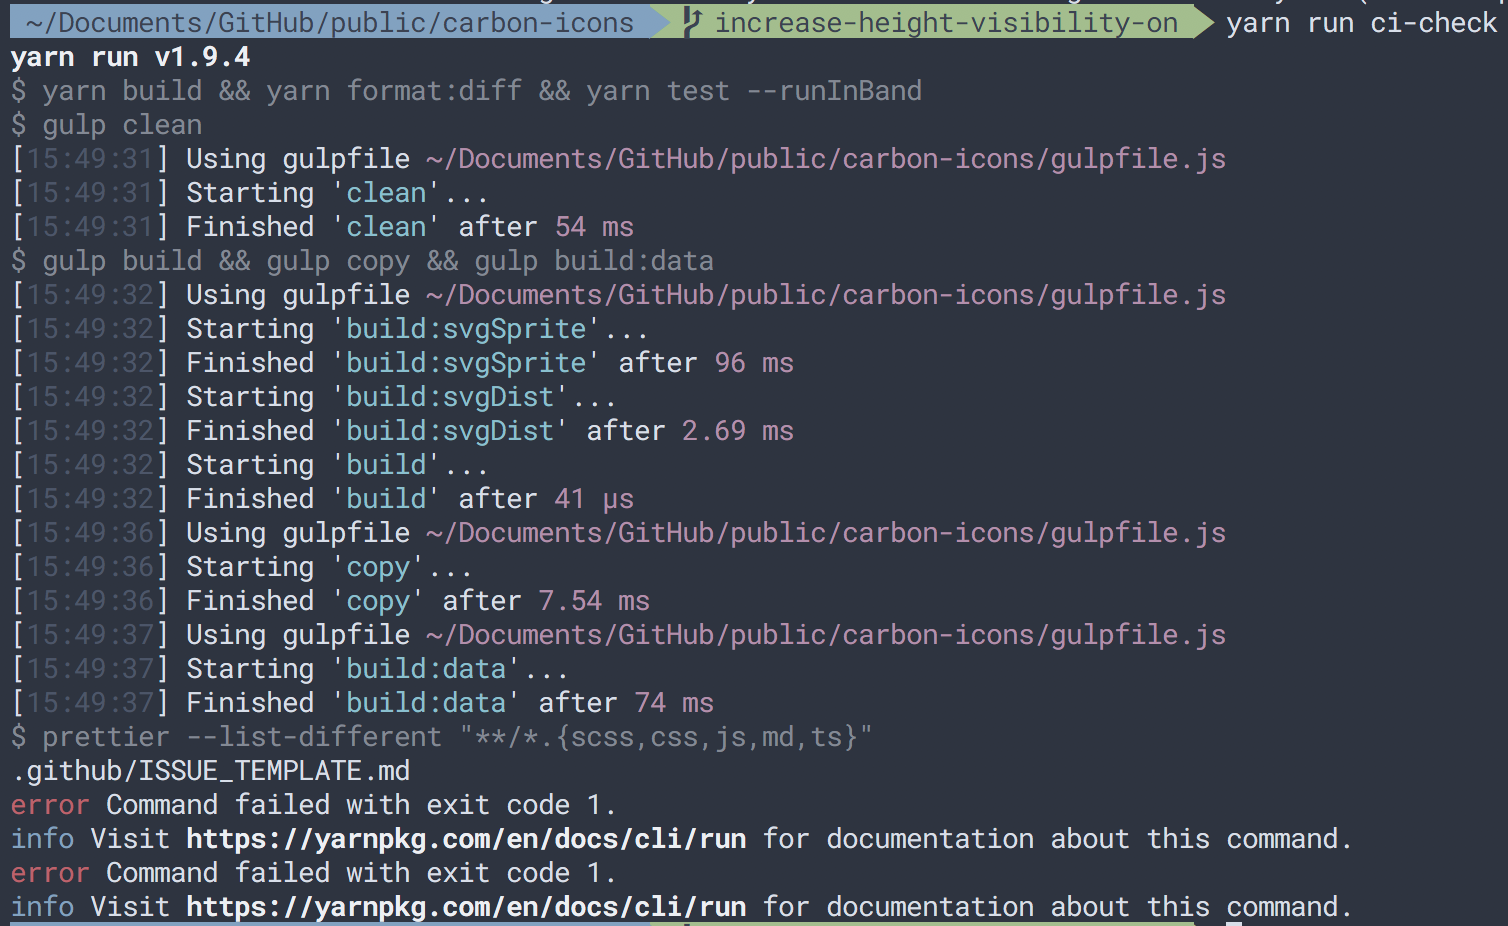 Github issue template breaking ci check issue 85 ibmcarbon image maxwellsz